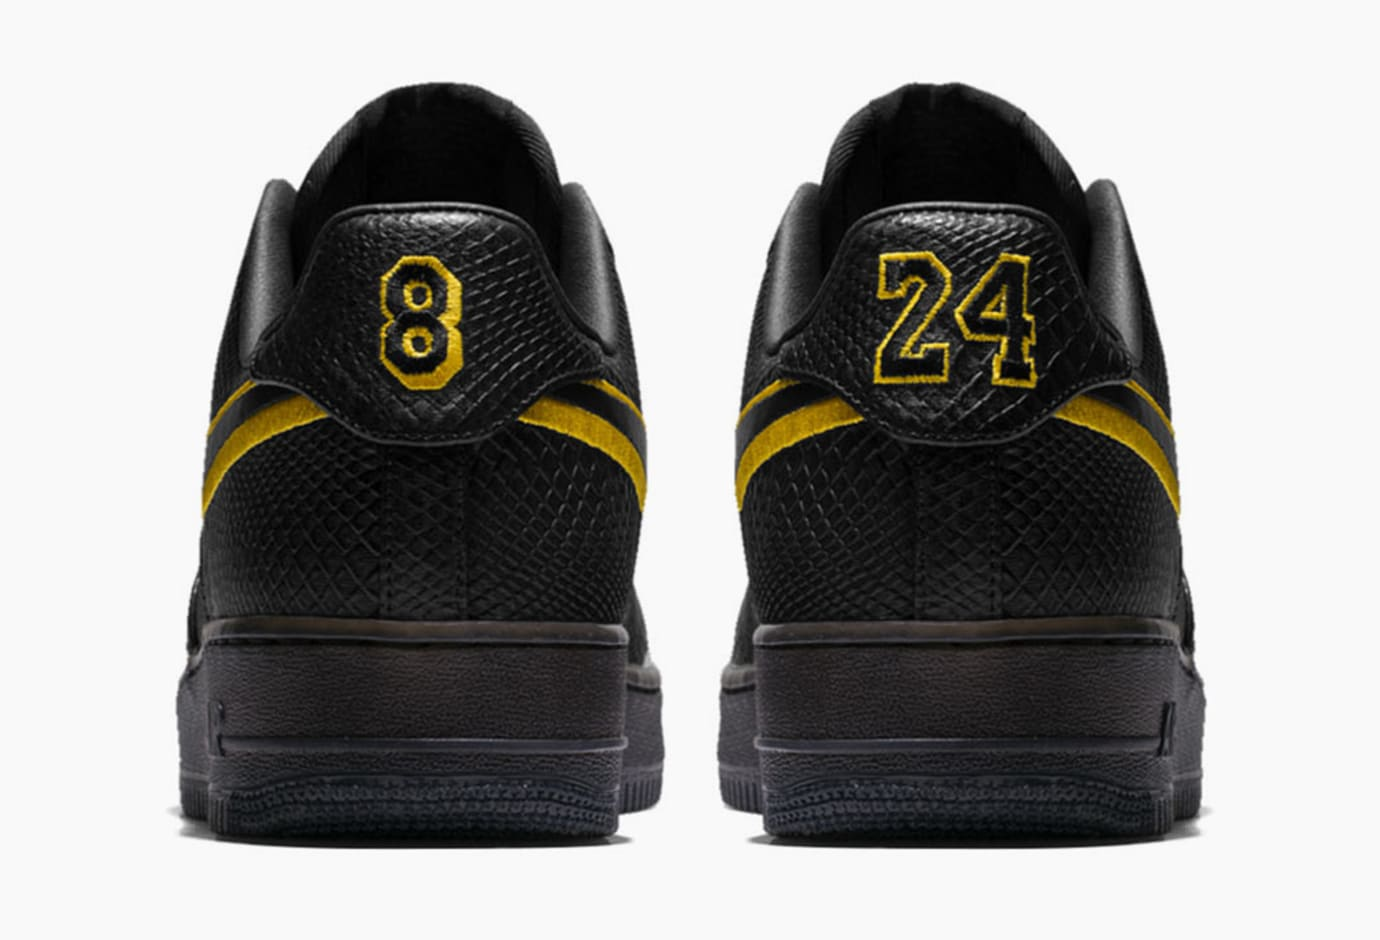 Nike Kobe Air Force 1 Black Mamba Heel